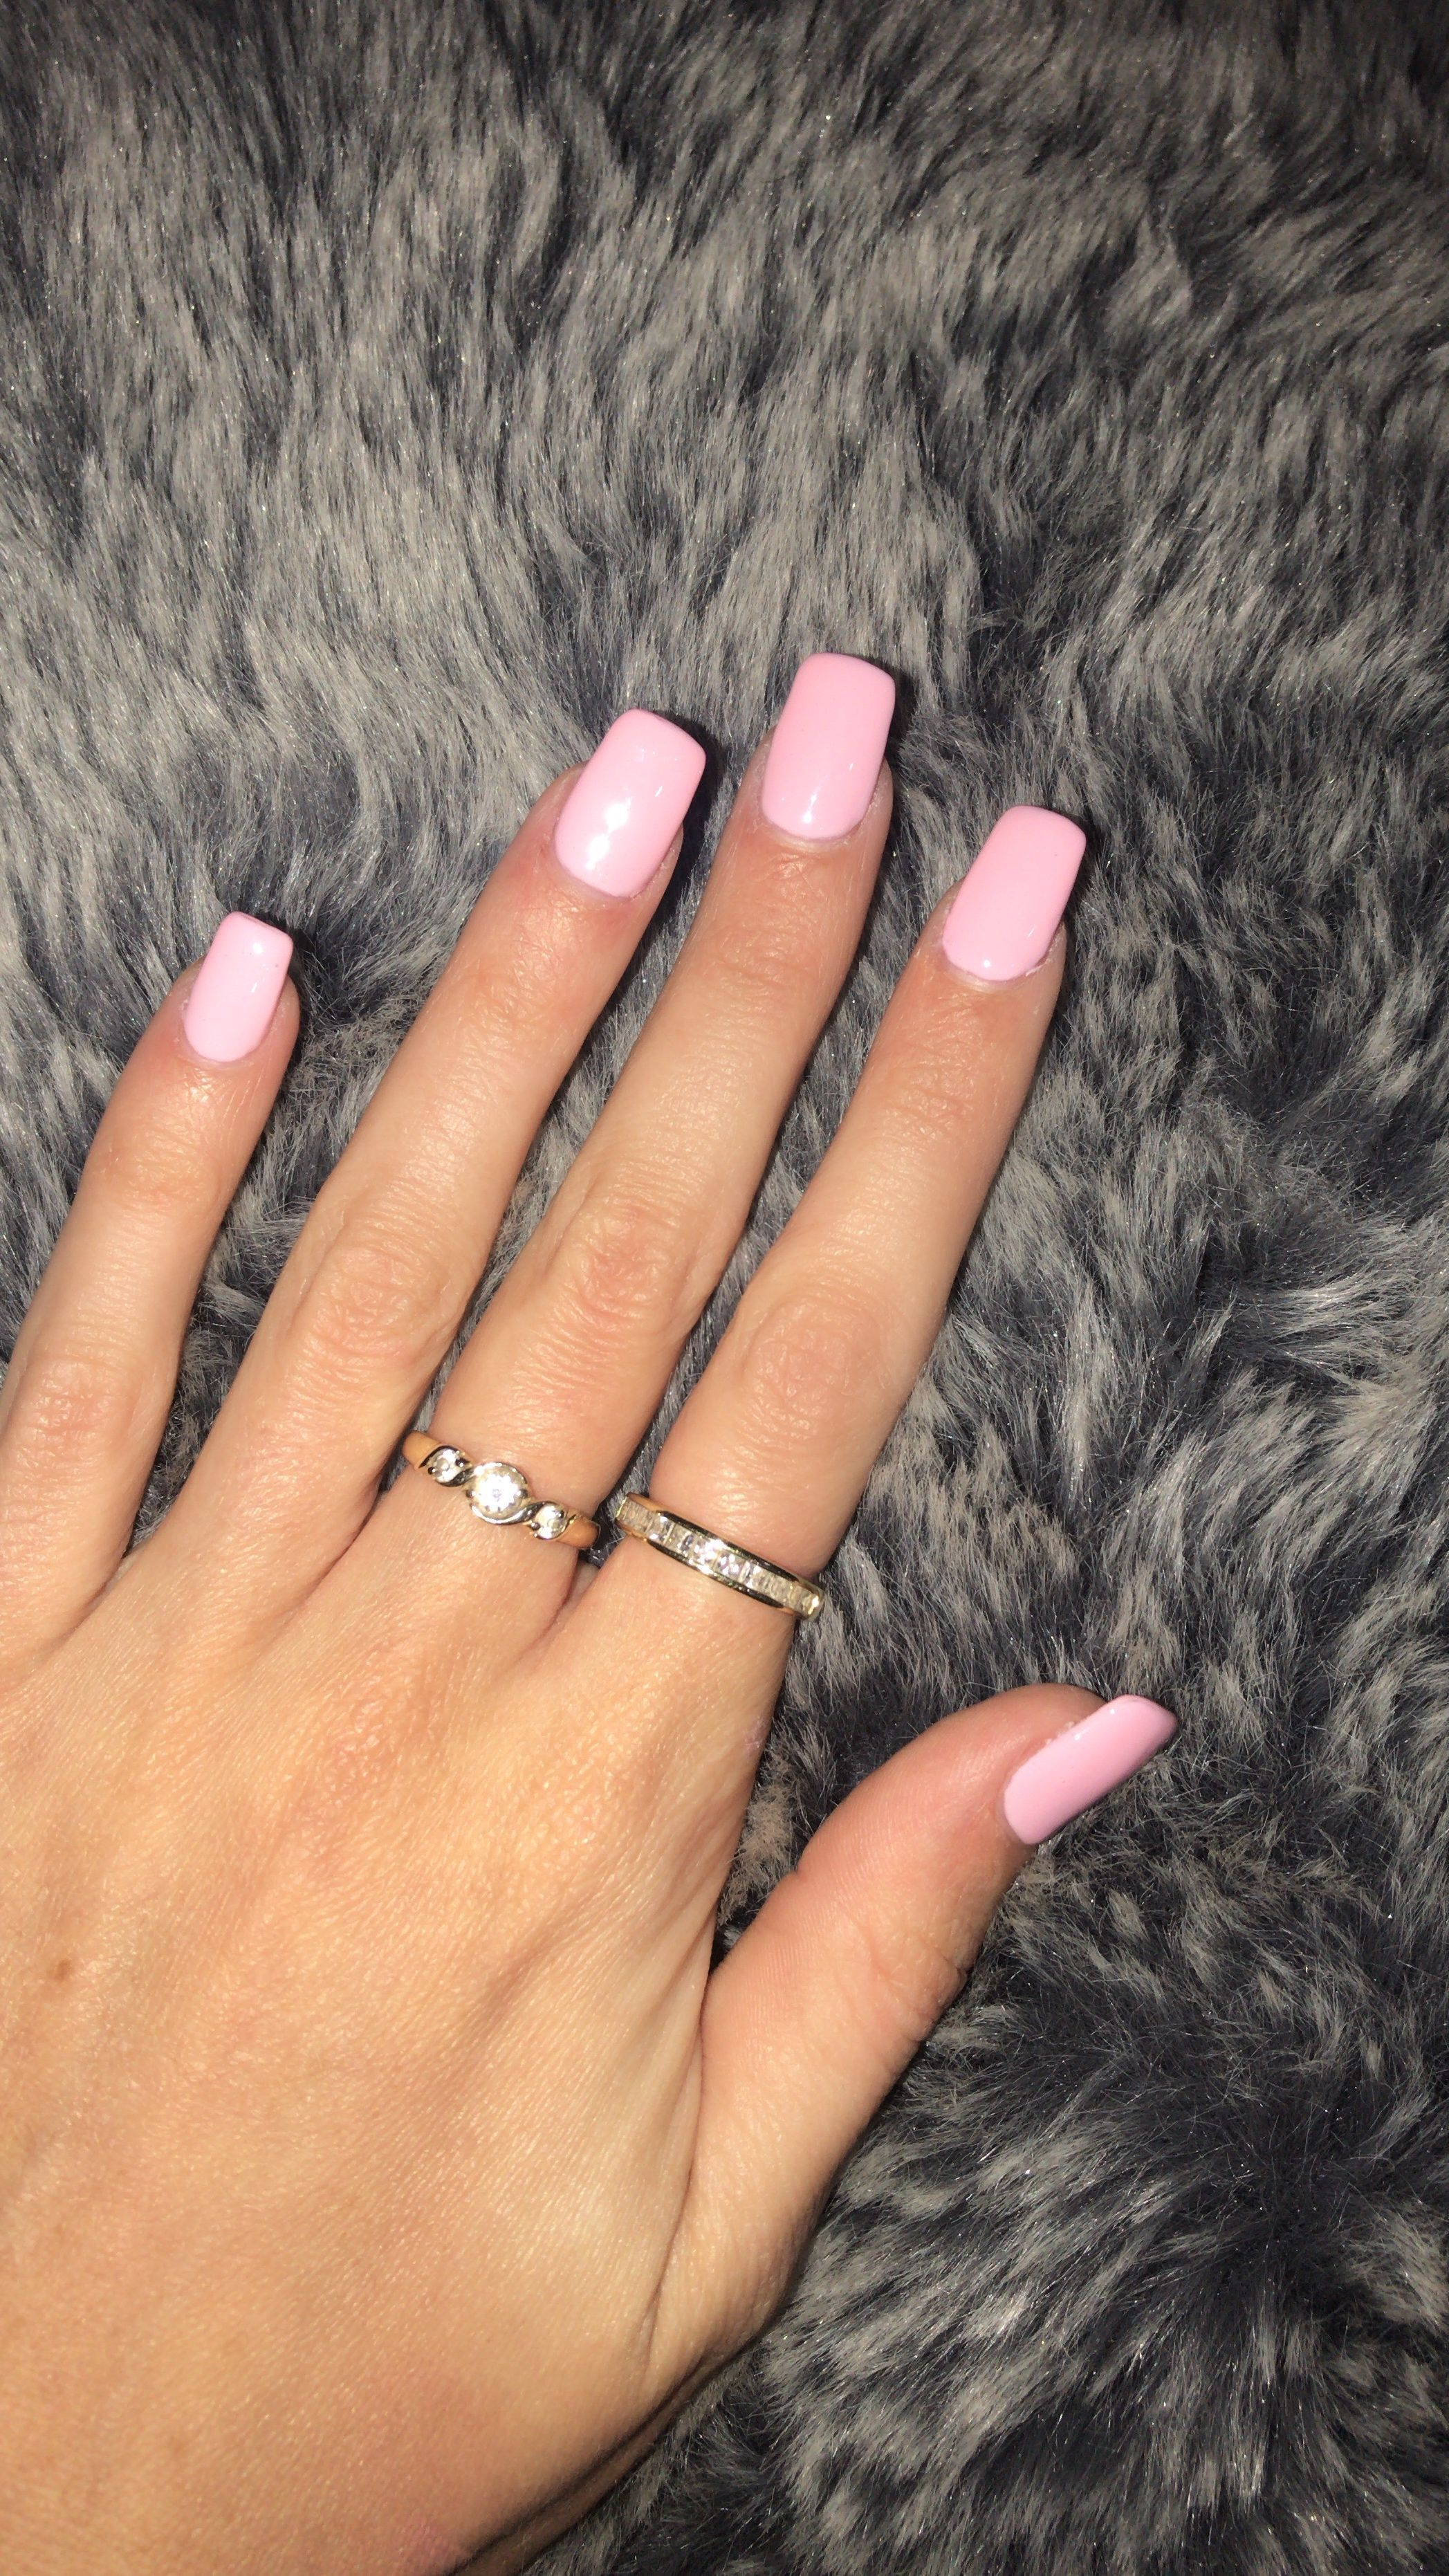 Pin By Nala Ghaly On Nails Square Nail Designs Square Acrylic Nails Short Acrylic Nails